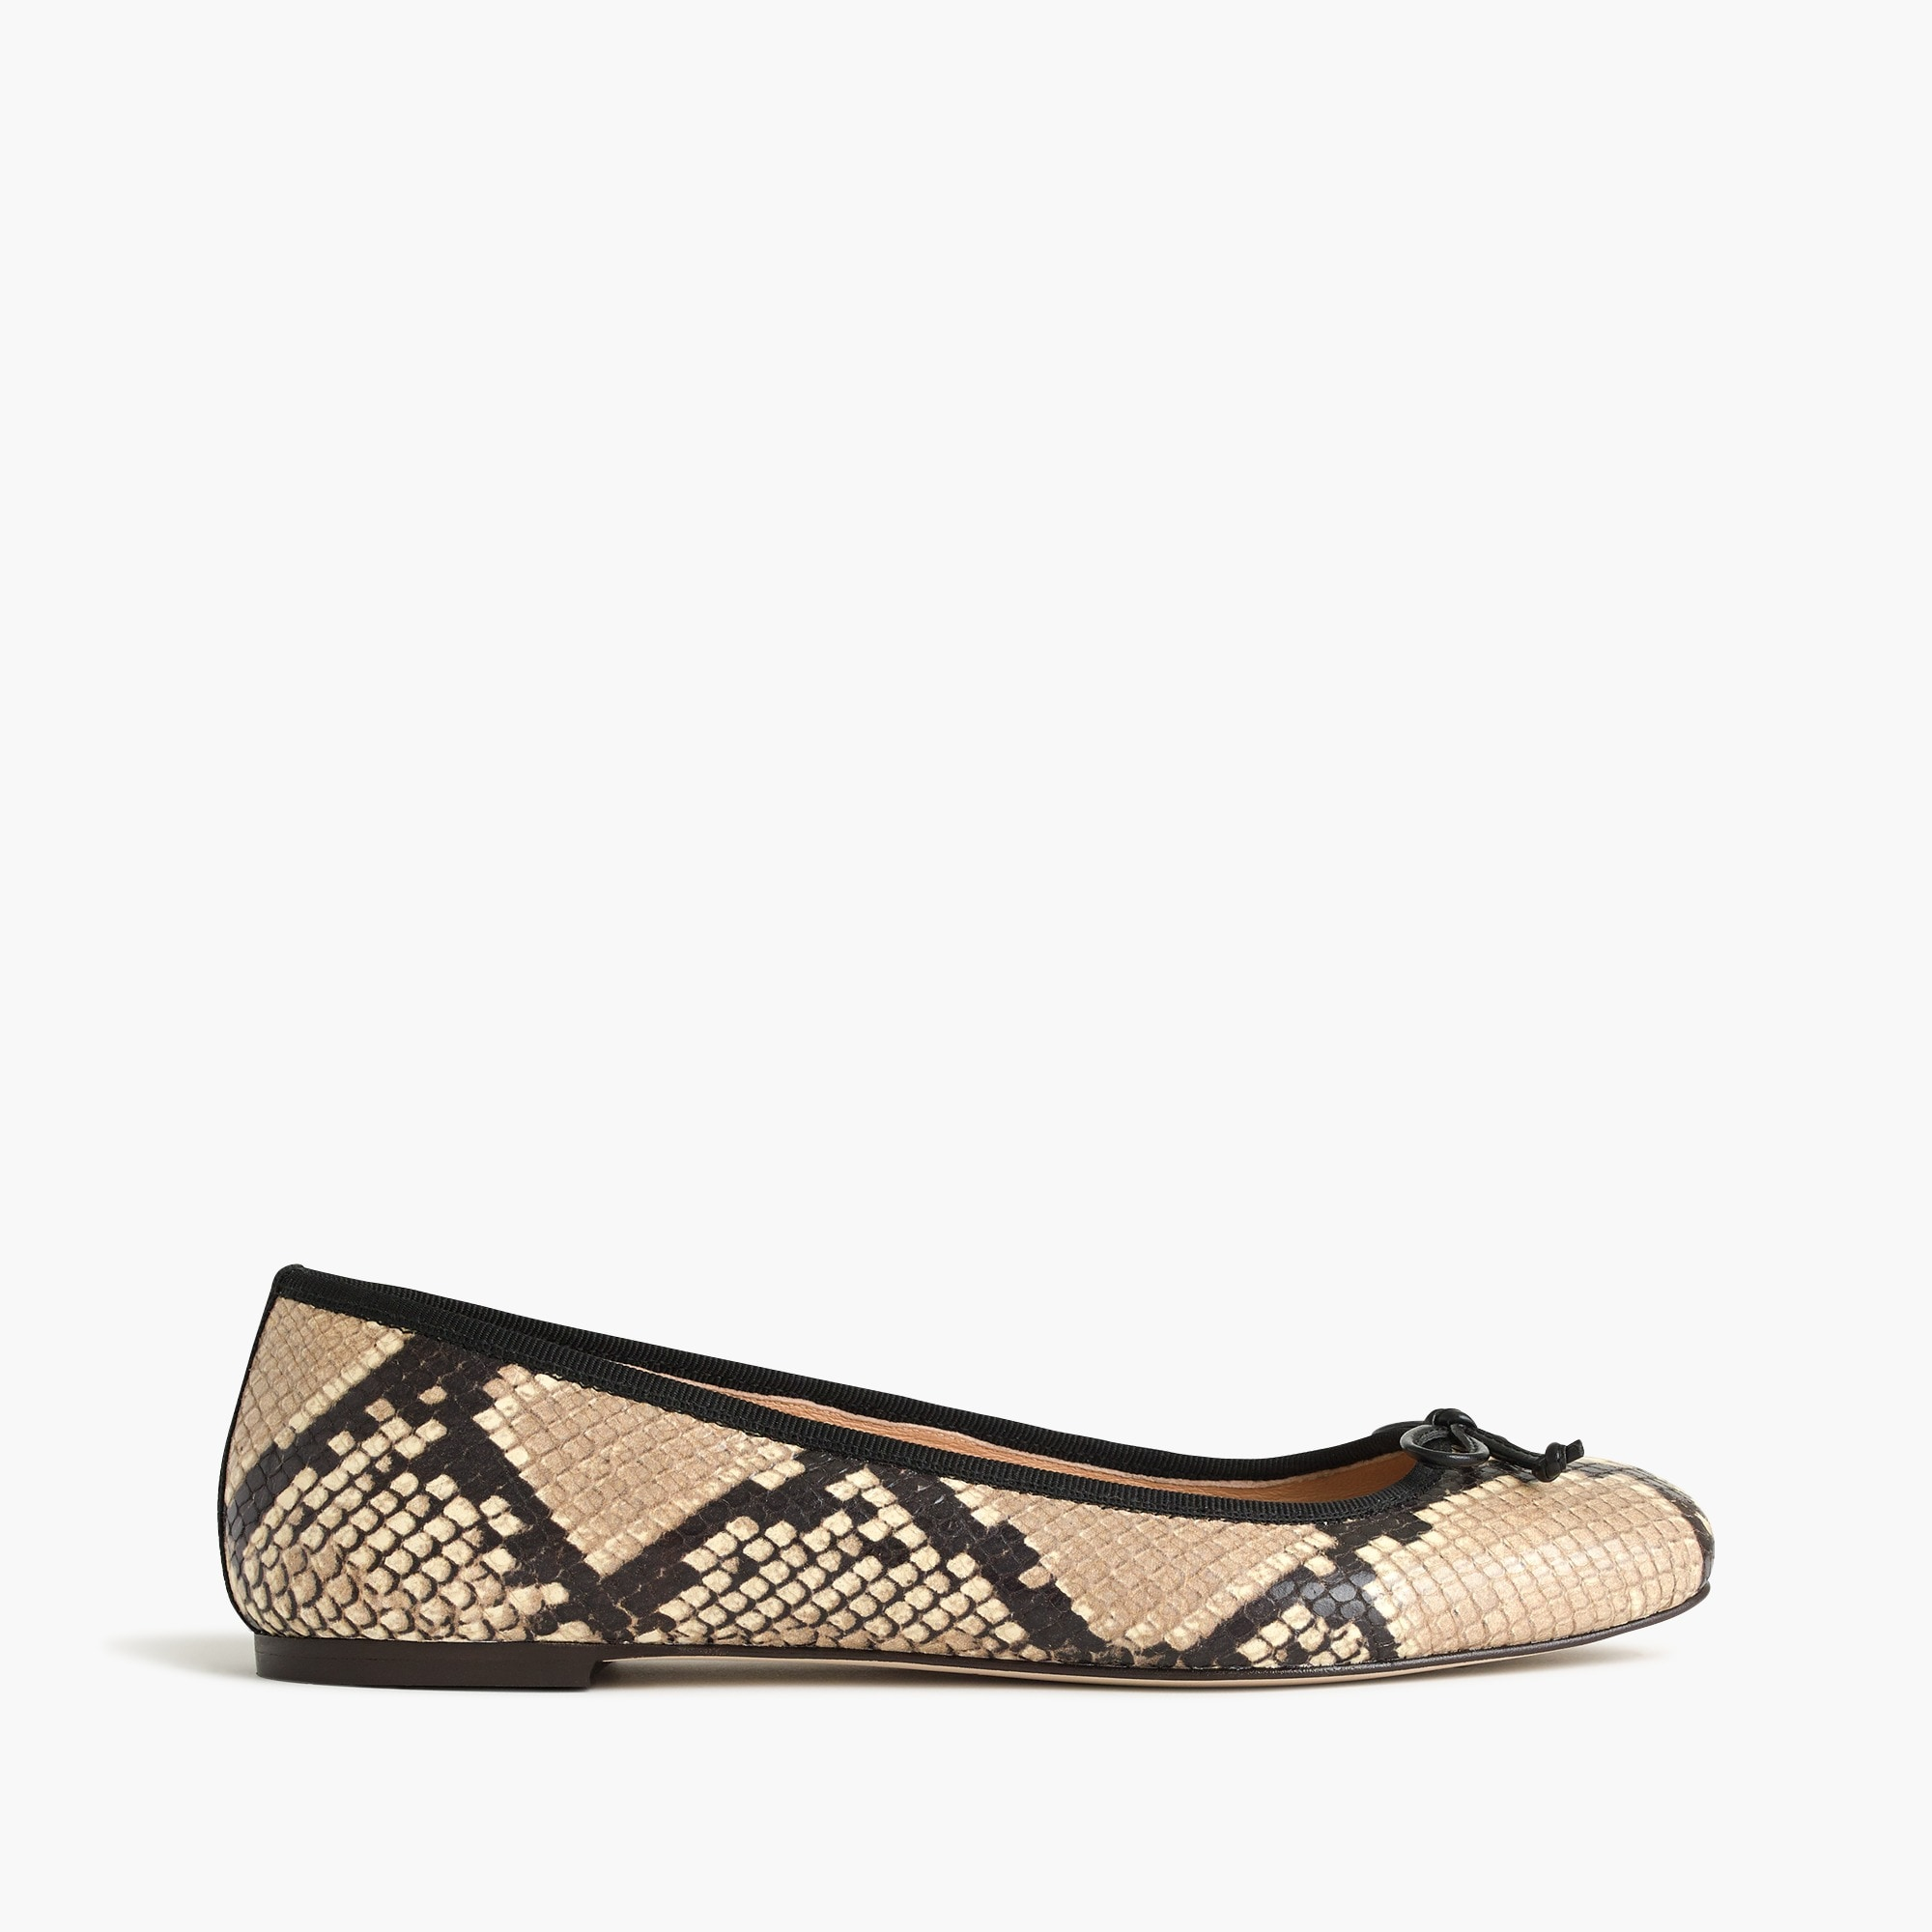 lily ballet flats in snakeskin-printed leather : women flats